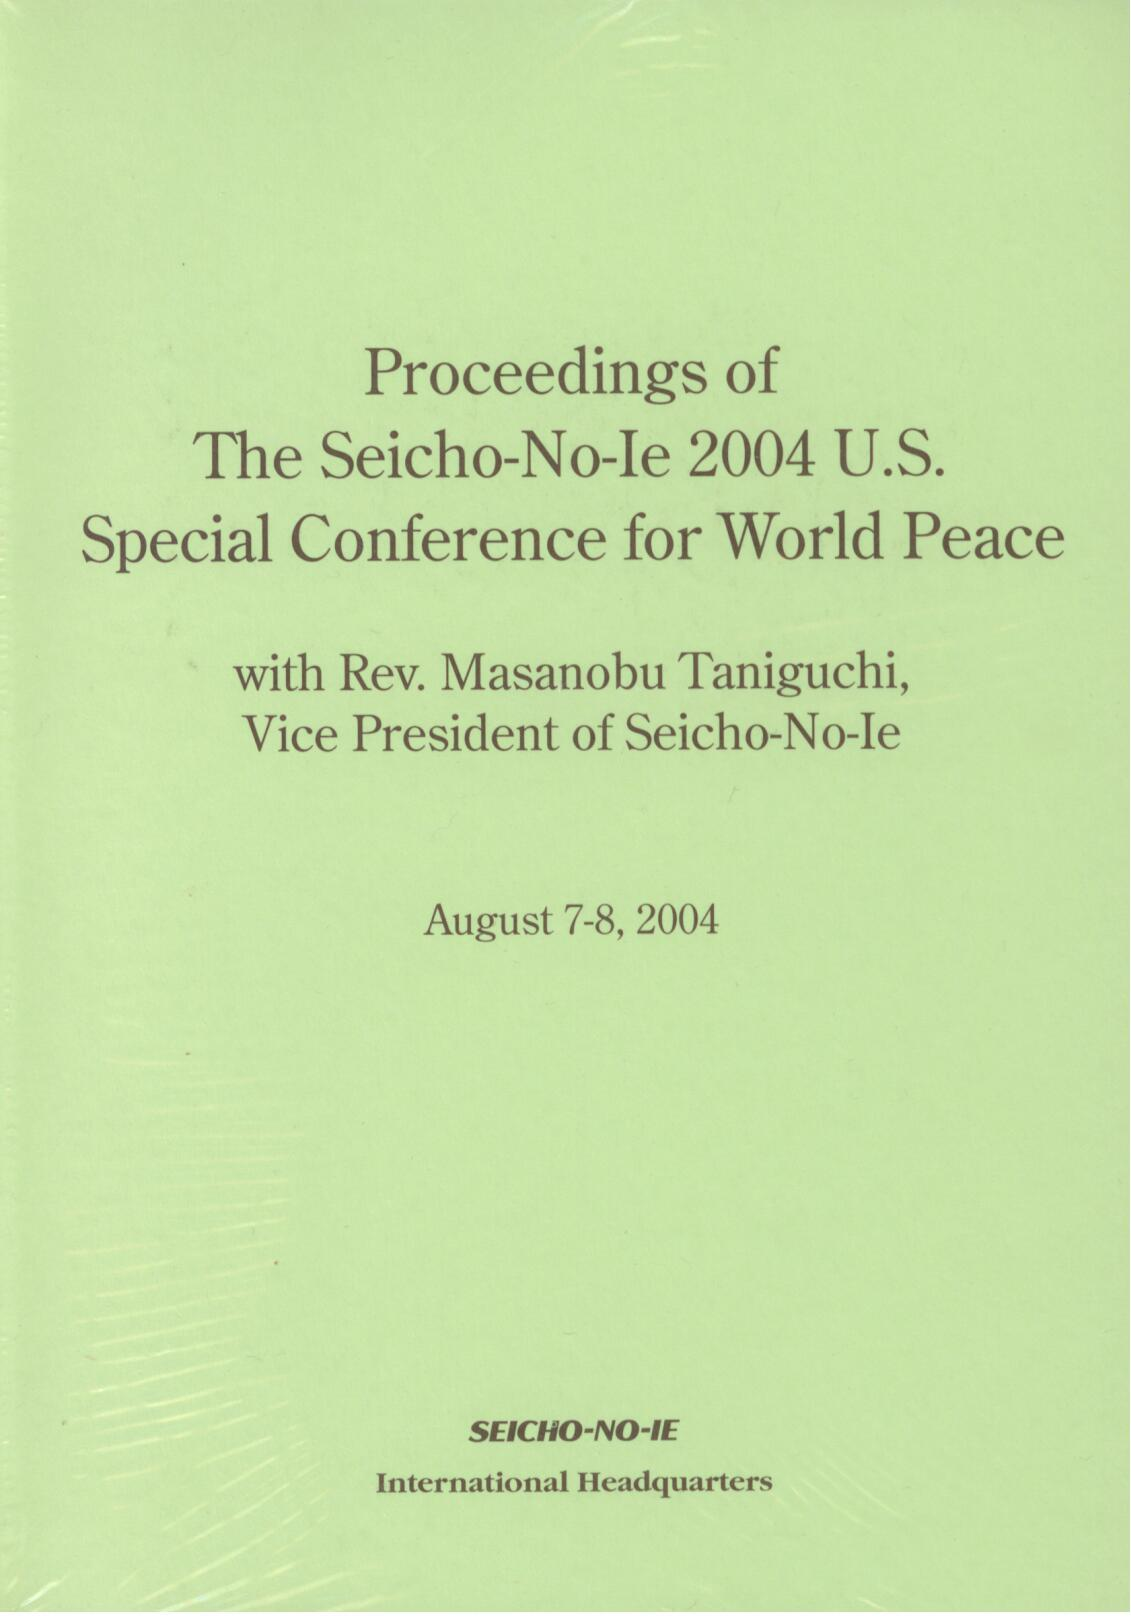 Proceedings 2004